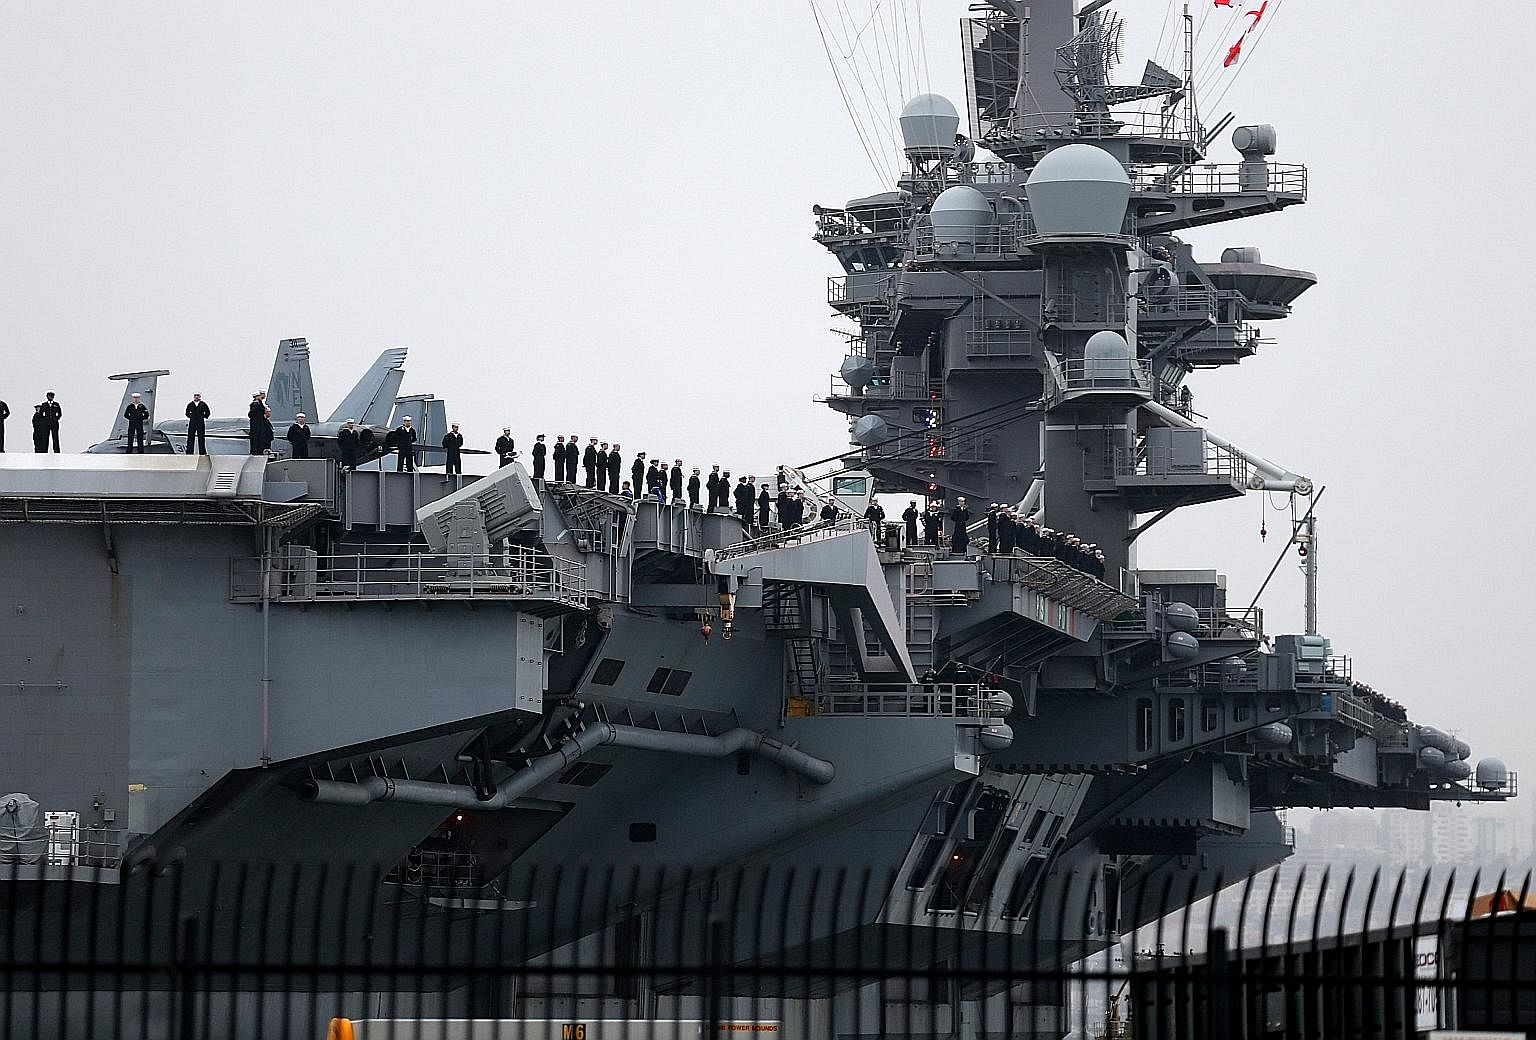 Aircraft carrier USS Carl Vinson is part of the patrols.